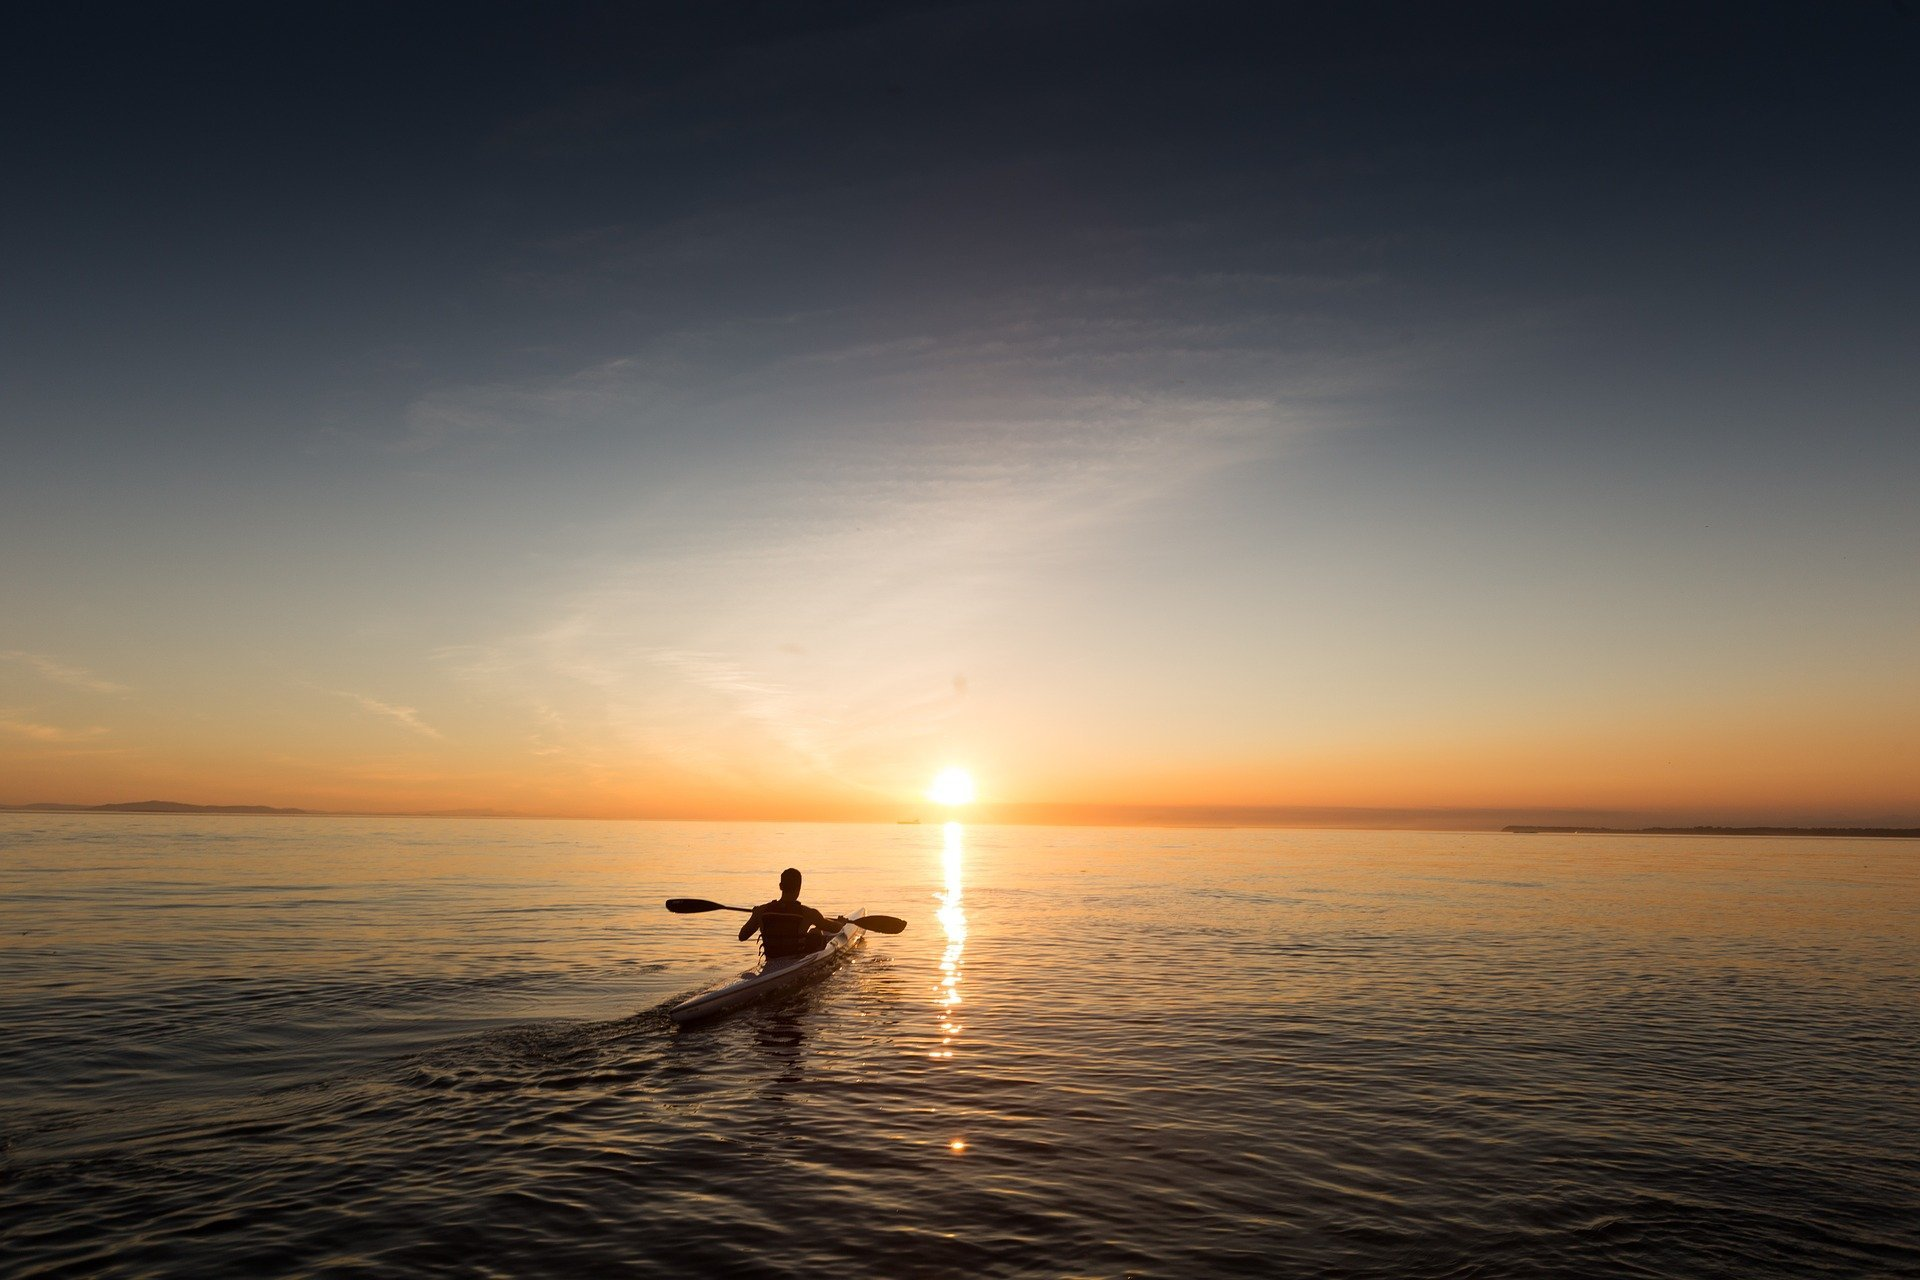 A silhouette of a person kayaking while the sun sets in front of him in the ocean | Photo: Pixabay/Free-Photos